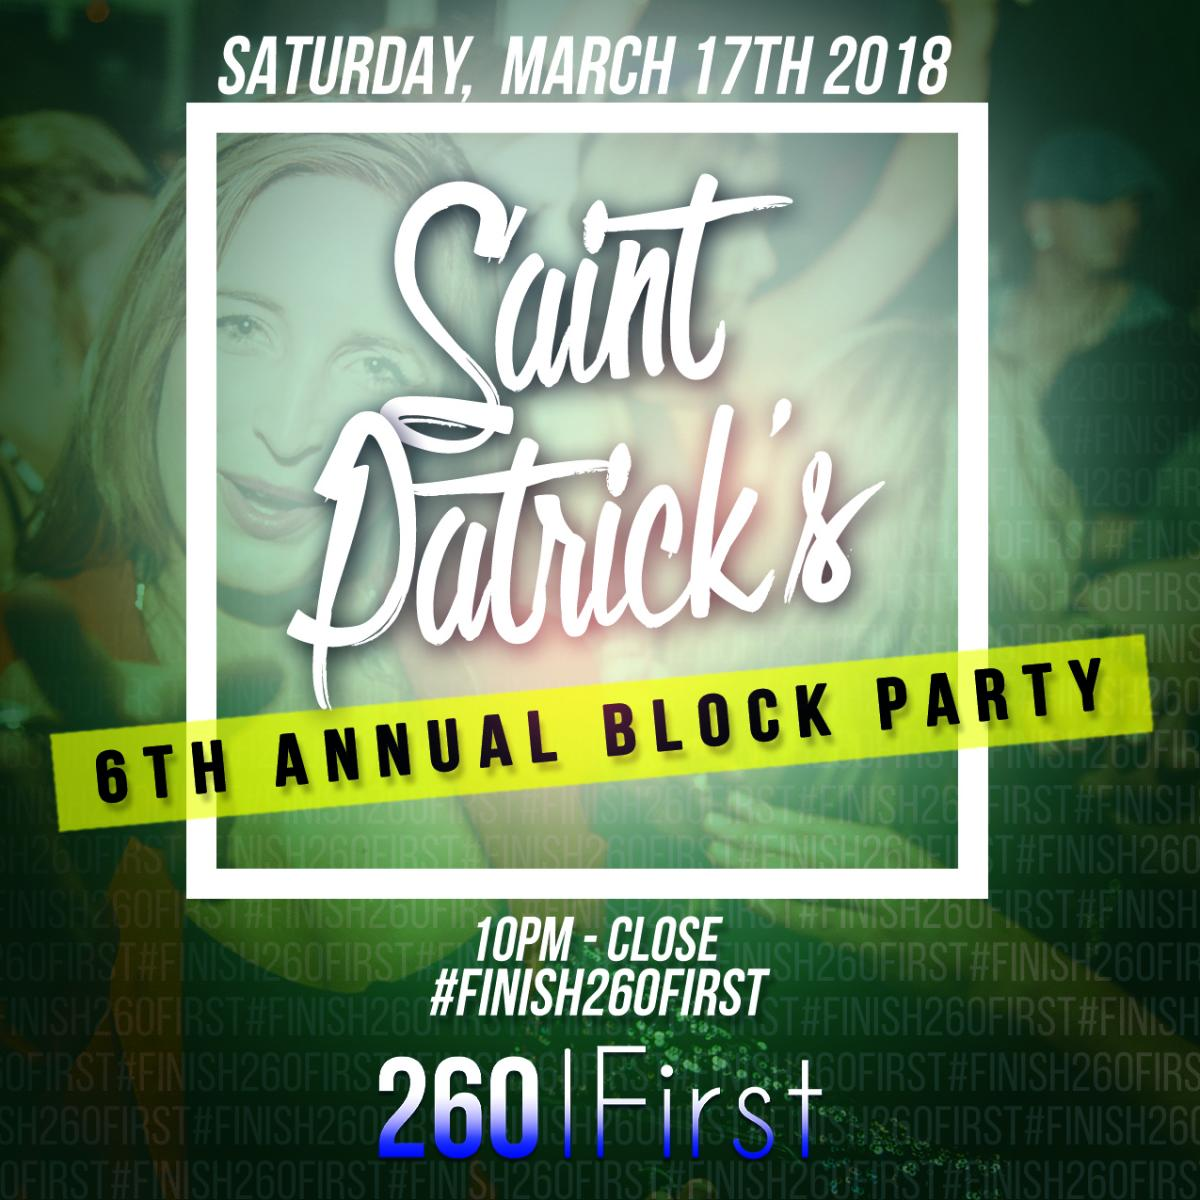 St. Patrick's 6th Annual Block Party